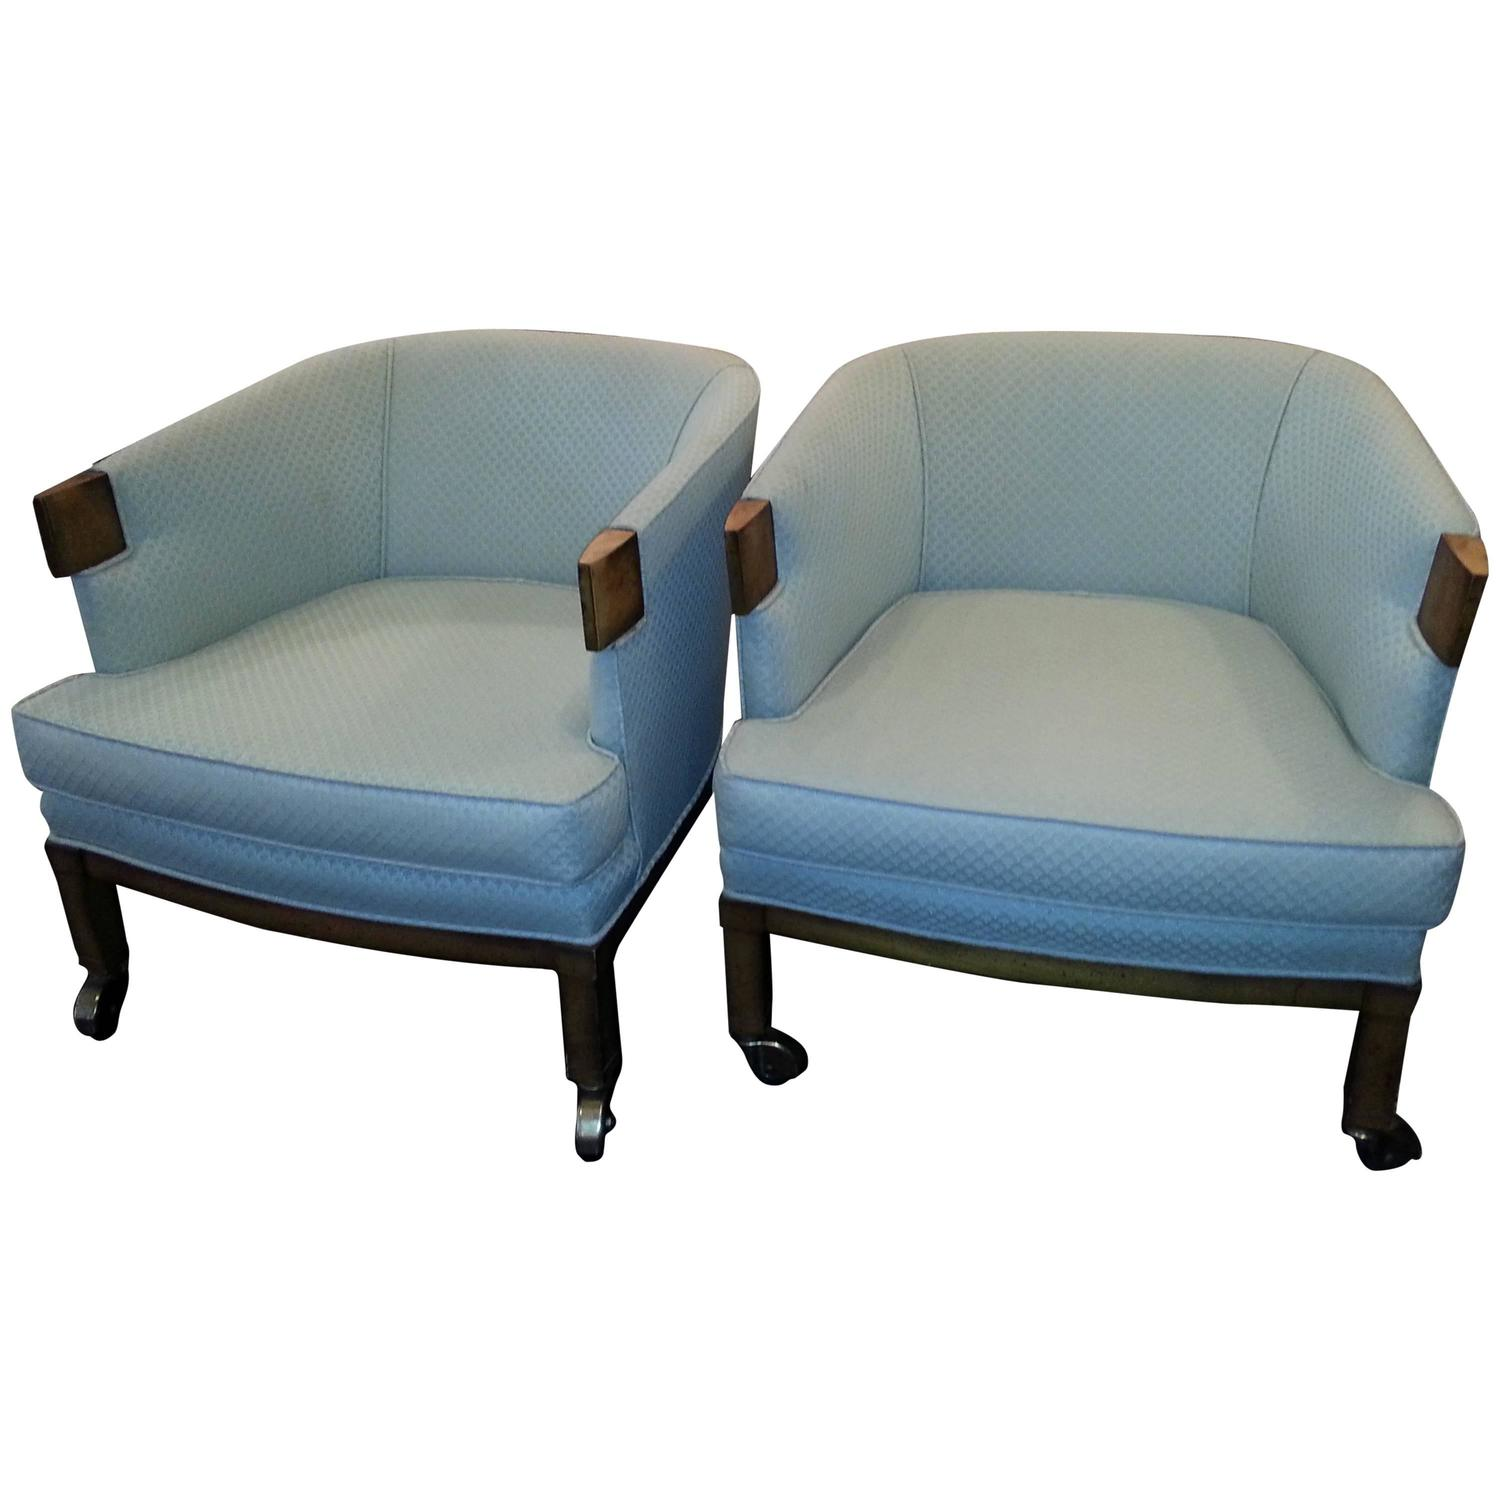 mid century modern cane barrel chairs desk chair target no wheels pair of at 1stdibs